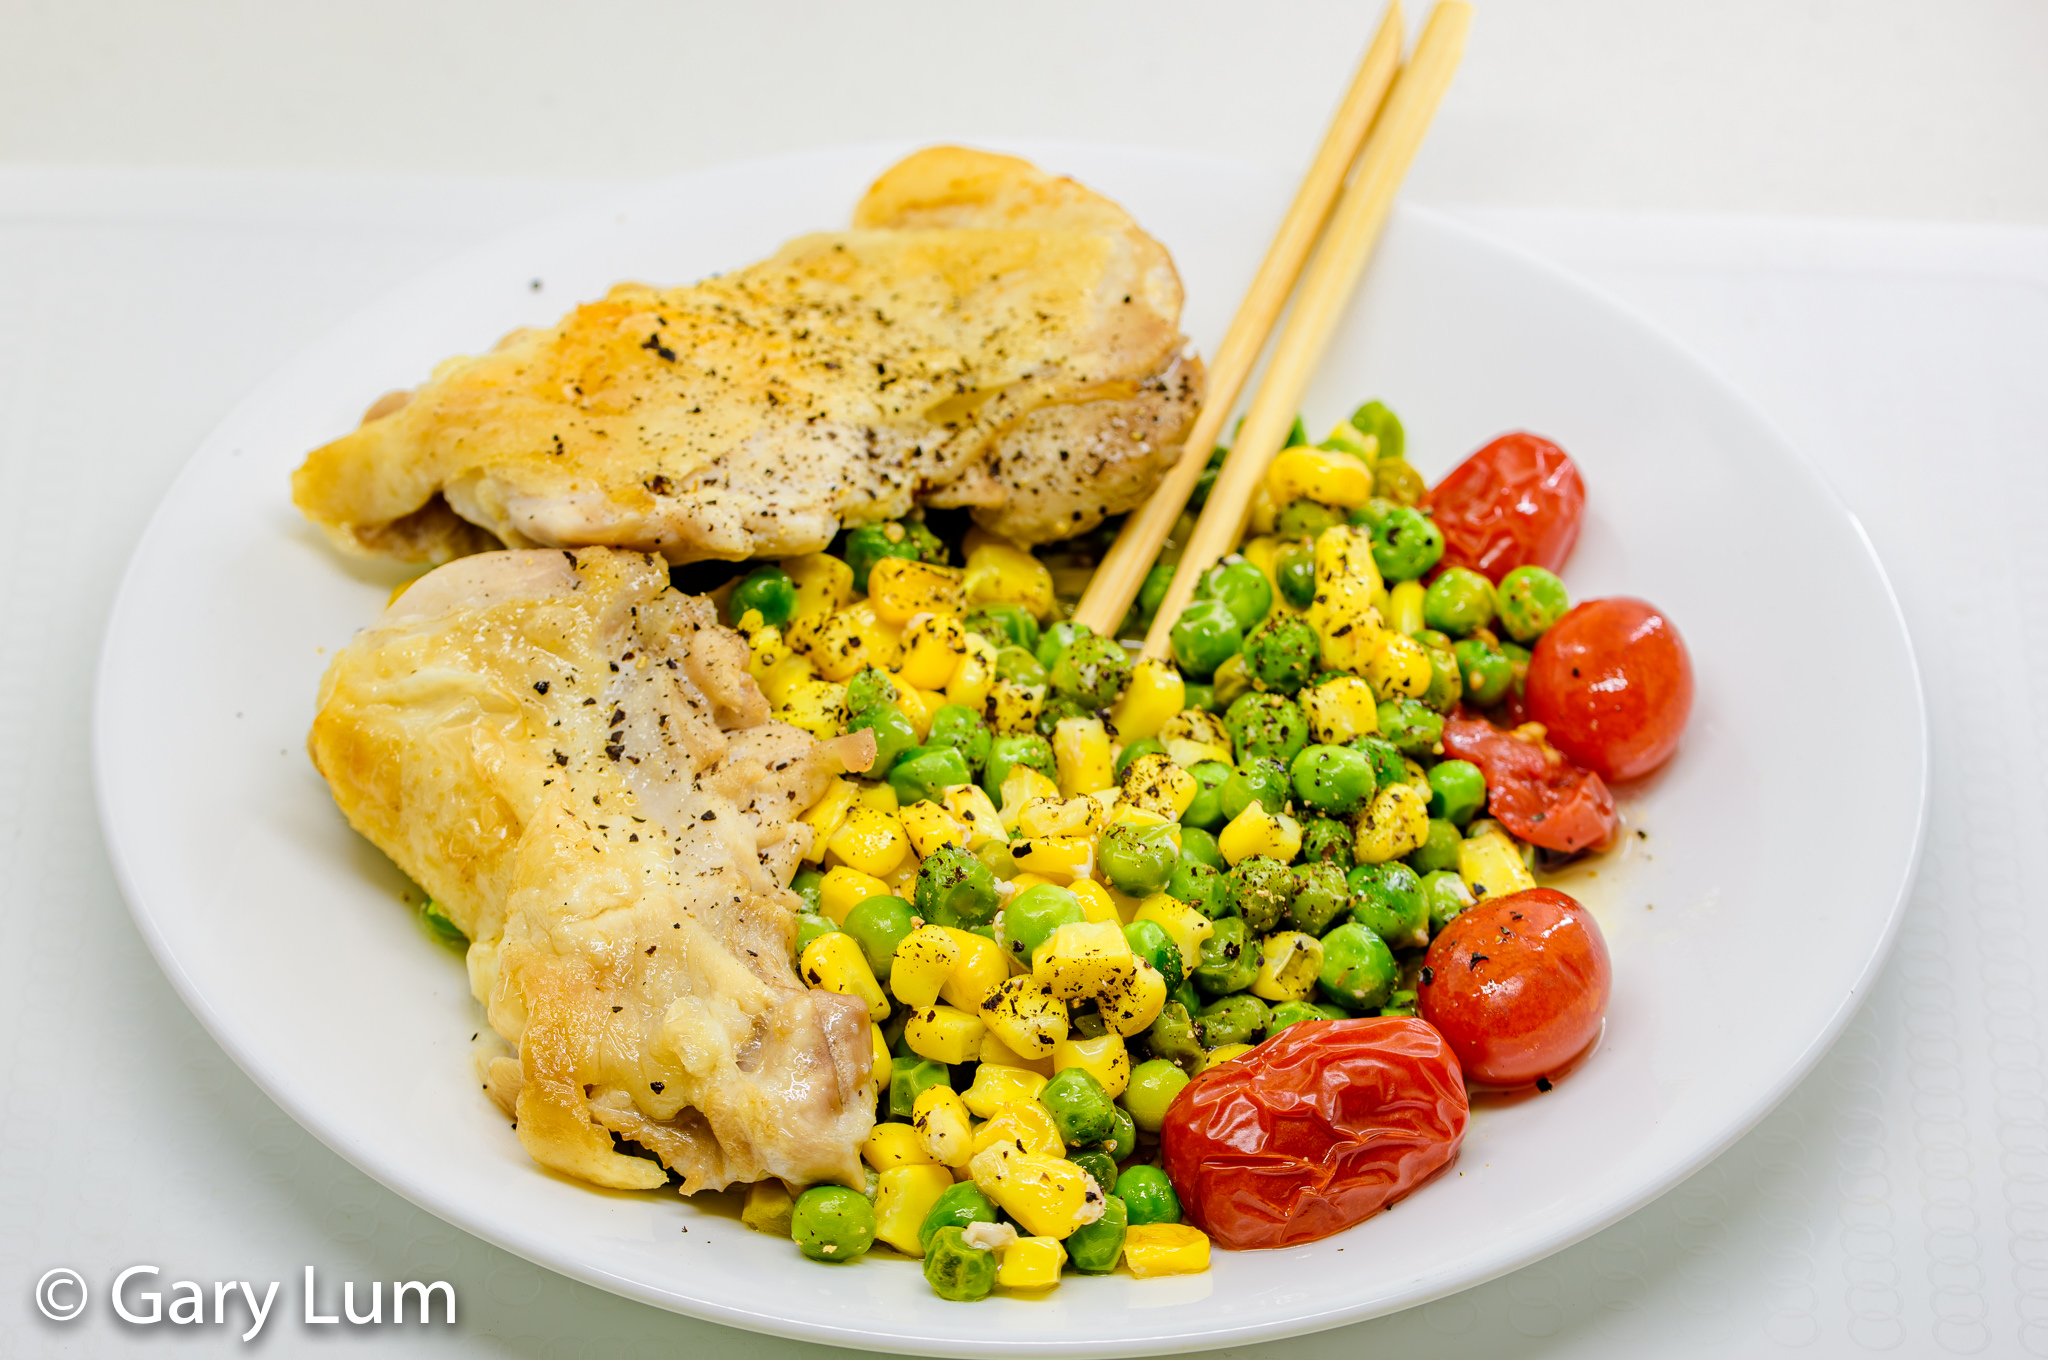 Deboned oven cooked chicken thigh and drumstick with peas, corn, and cherry tomatoes. Gary Lum.